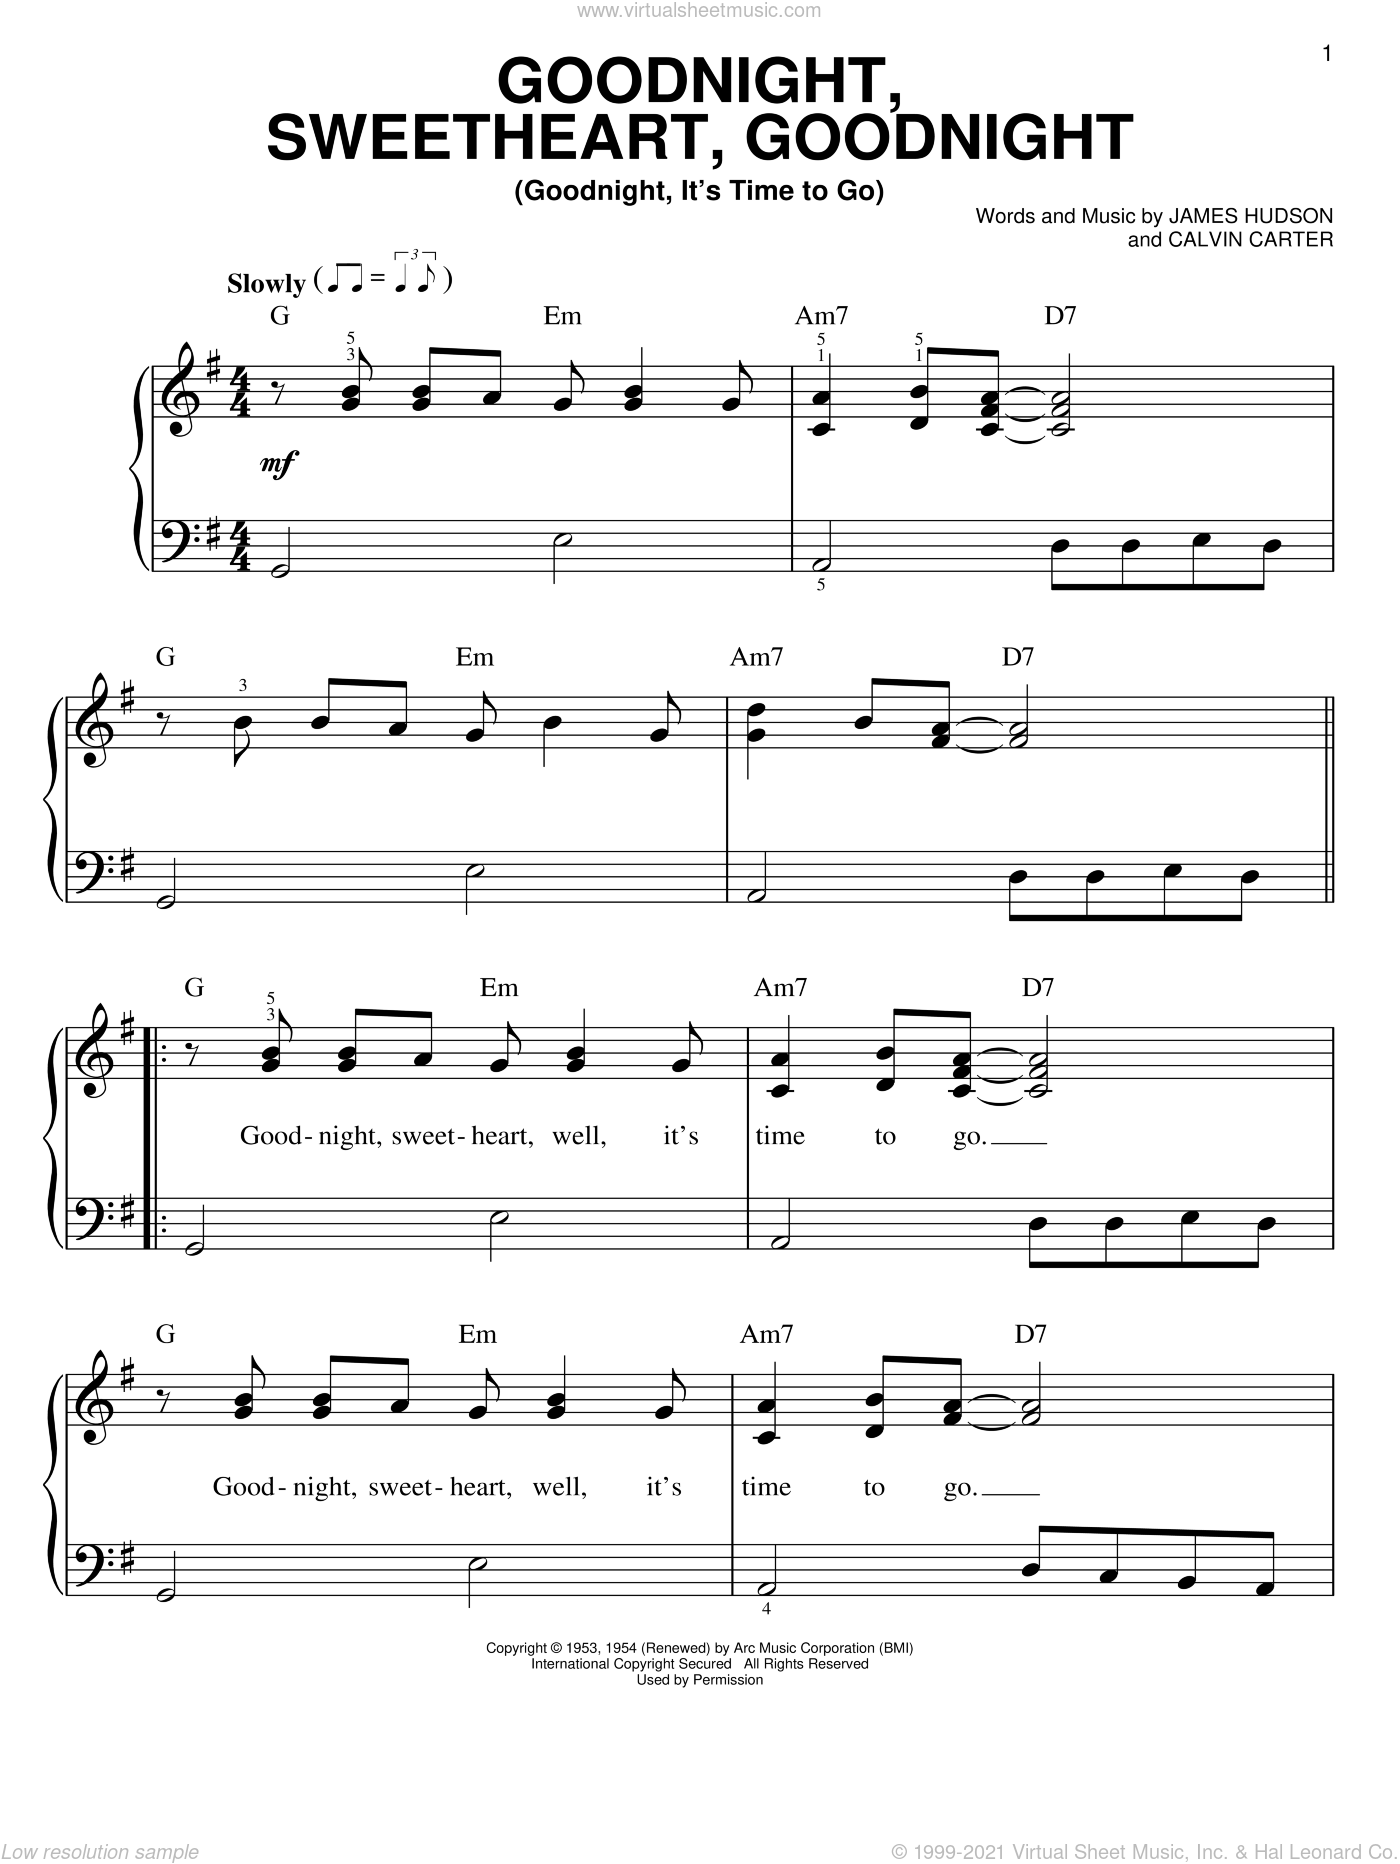 Goodnight, Sweetheart, Goodnight (Goodnight, It's Time To Go) sheet music for piano solo by Dean Martin, The Moonglows, The Platters, The Spaniels, Calvin Carter and James Hudson, easy skill level